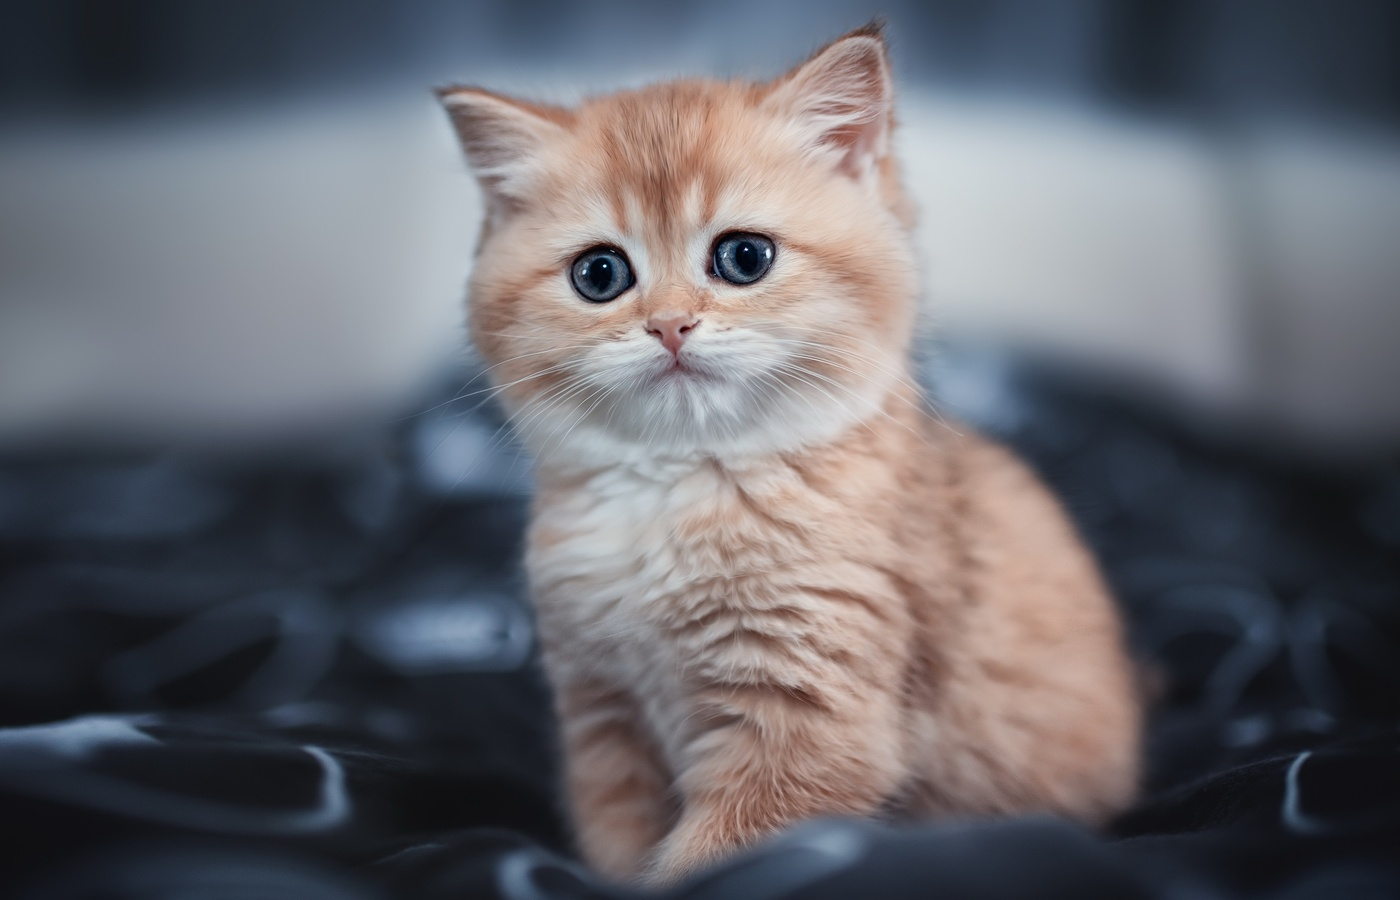 cute-kitten-4k-im.jpg